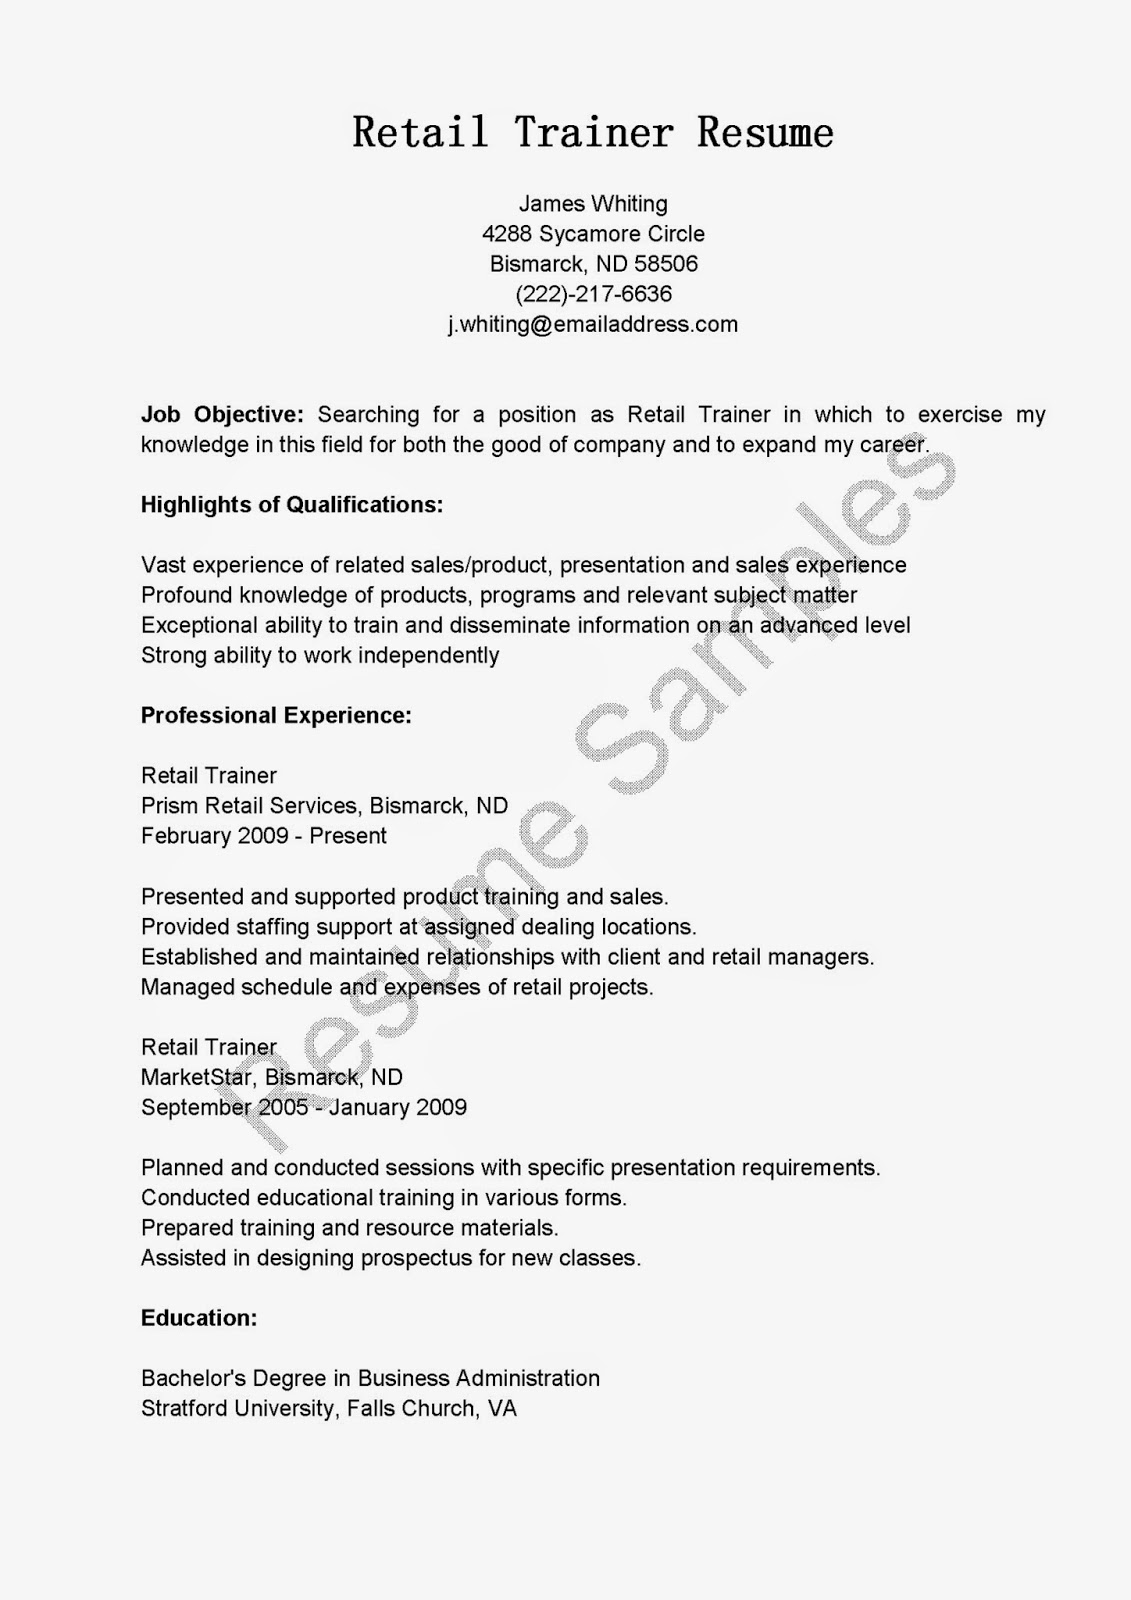 Sample Trainer Resume Resume Samples Retail Trainer Resume Sample